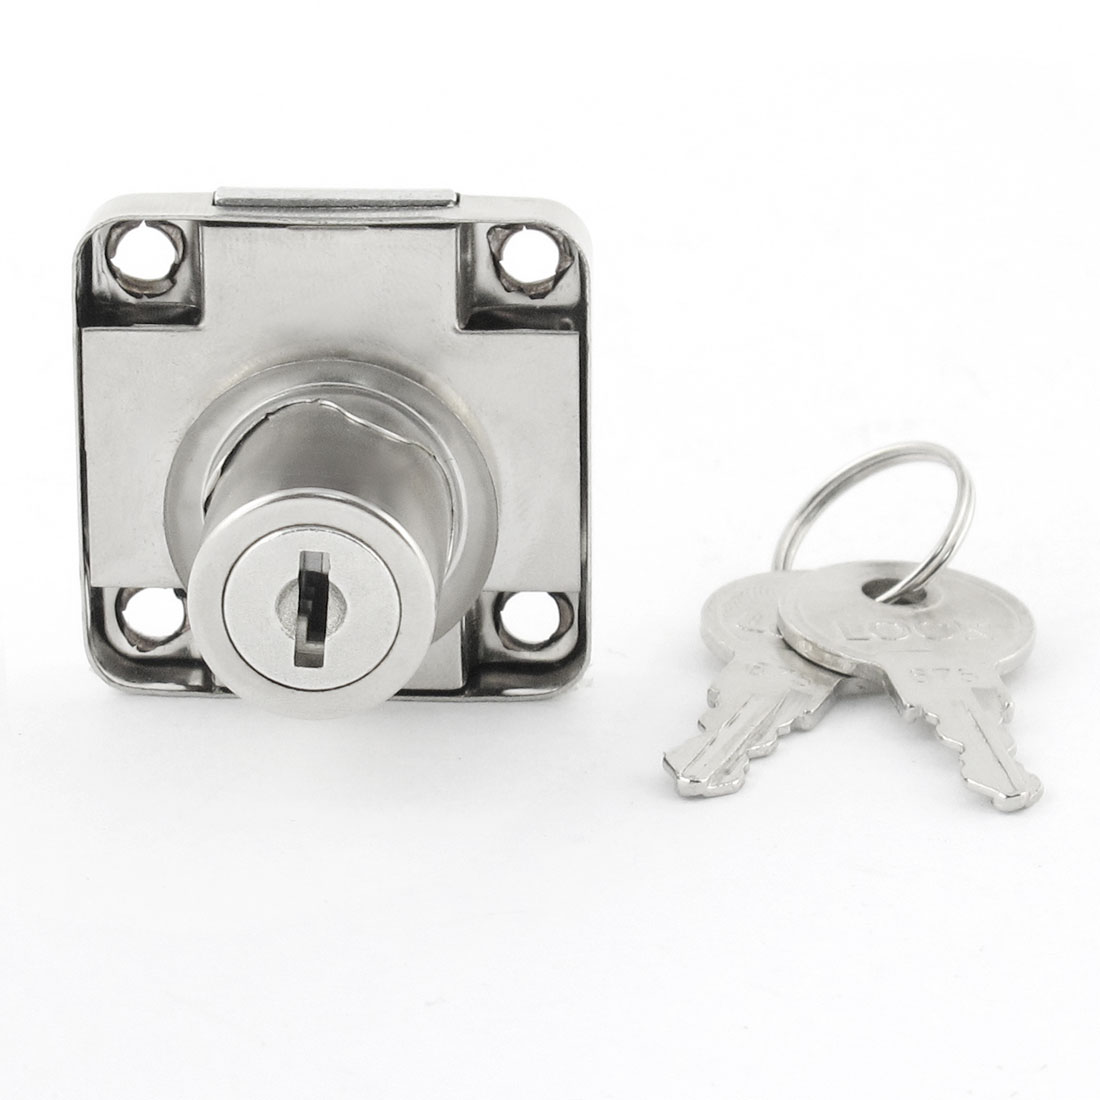 Family Silve Tone 40mm x 40mm Door Desk Drawer Cabinet Lock